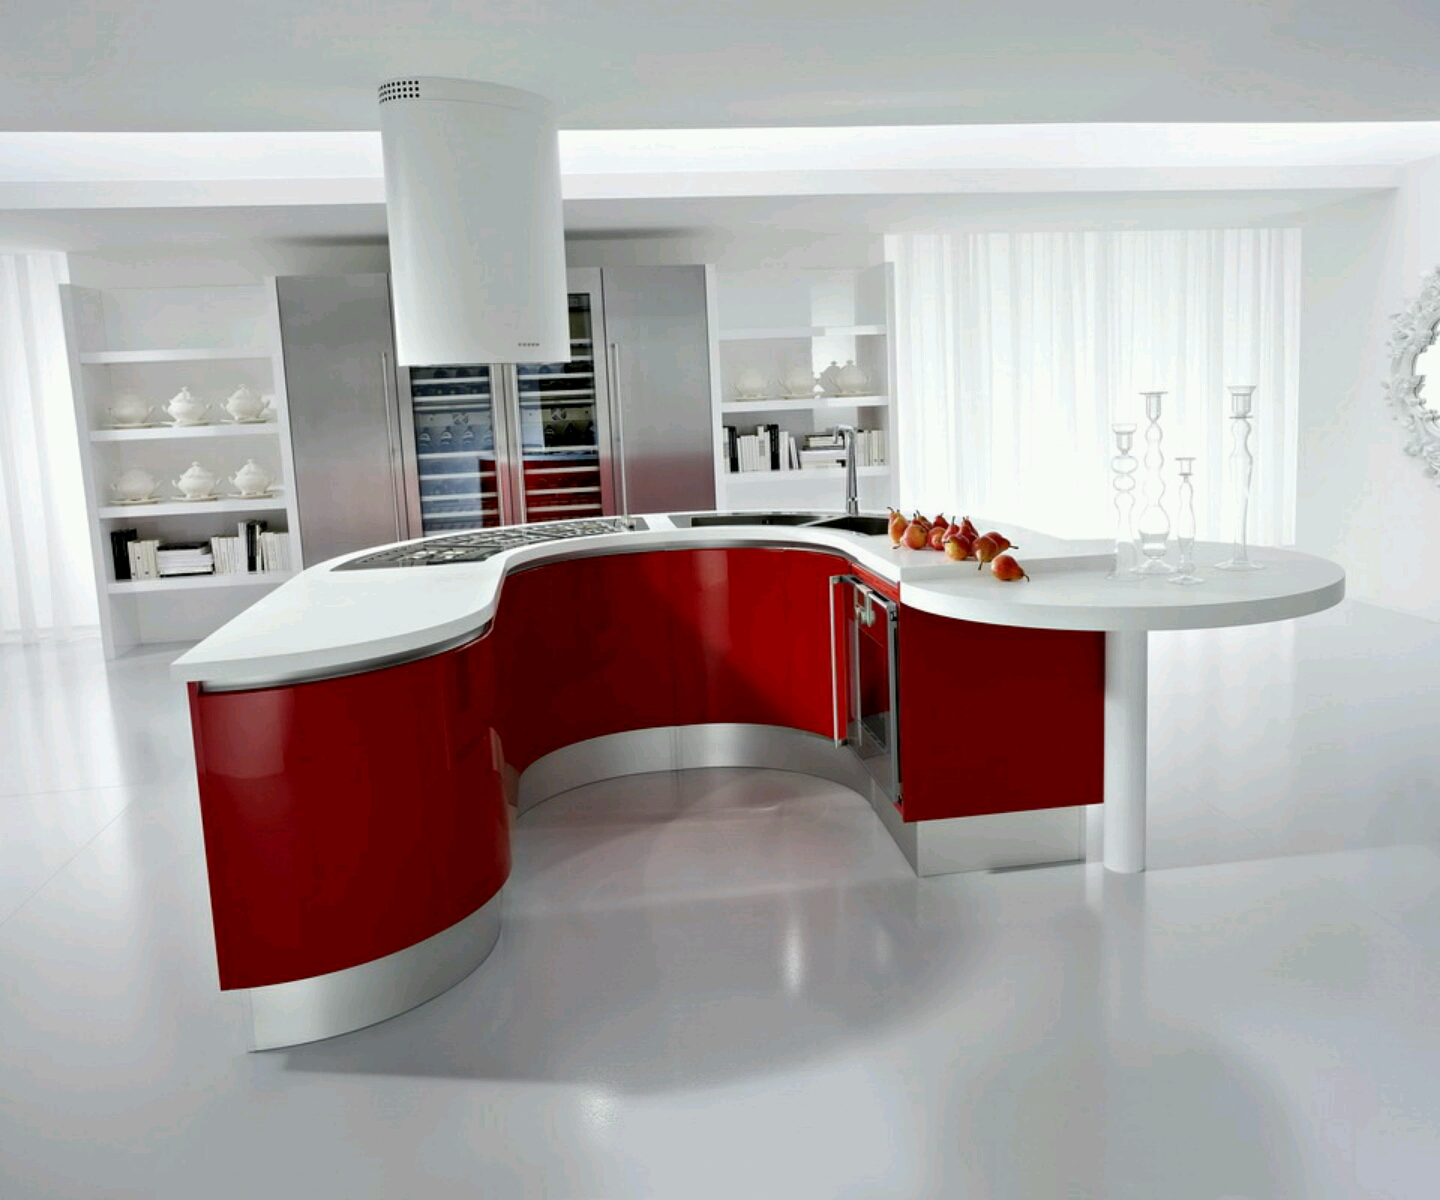 Modern kitchen cabinets designs ideas furniture gallery - Modern kitchen design photos ...